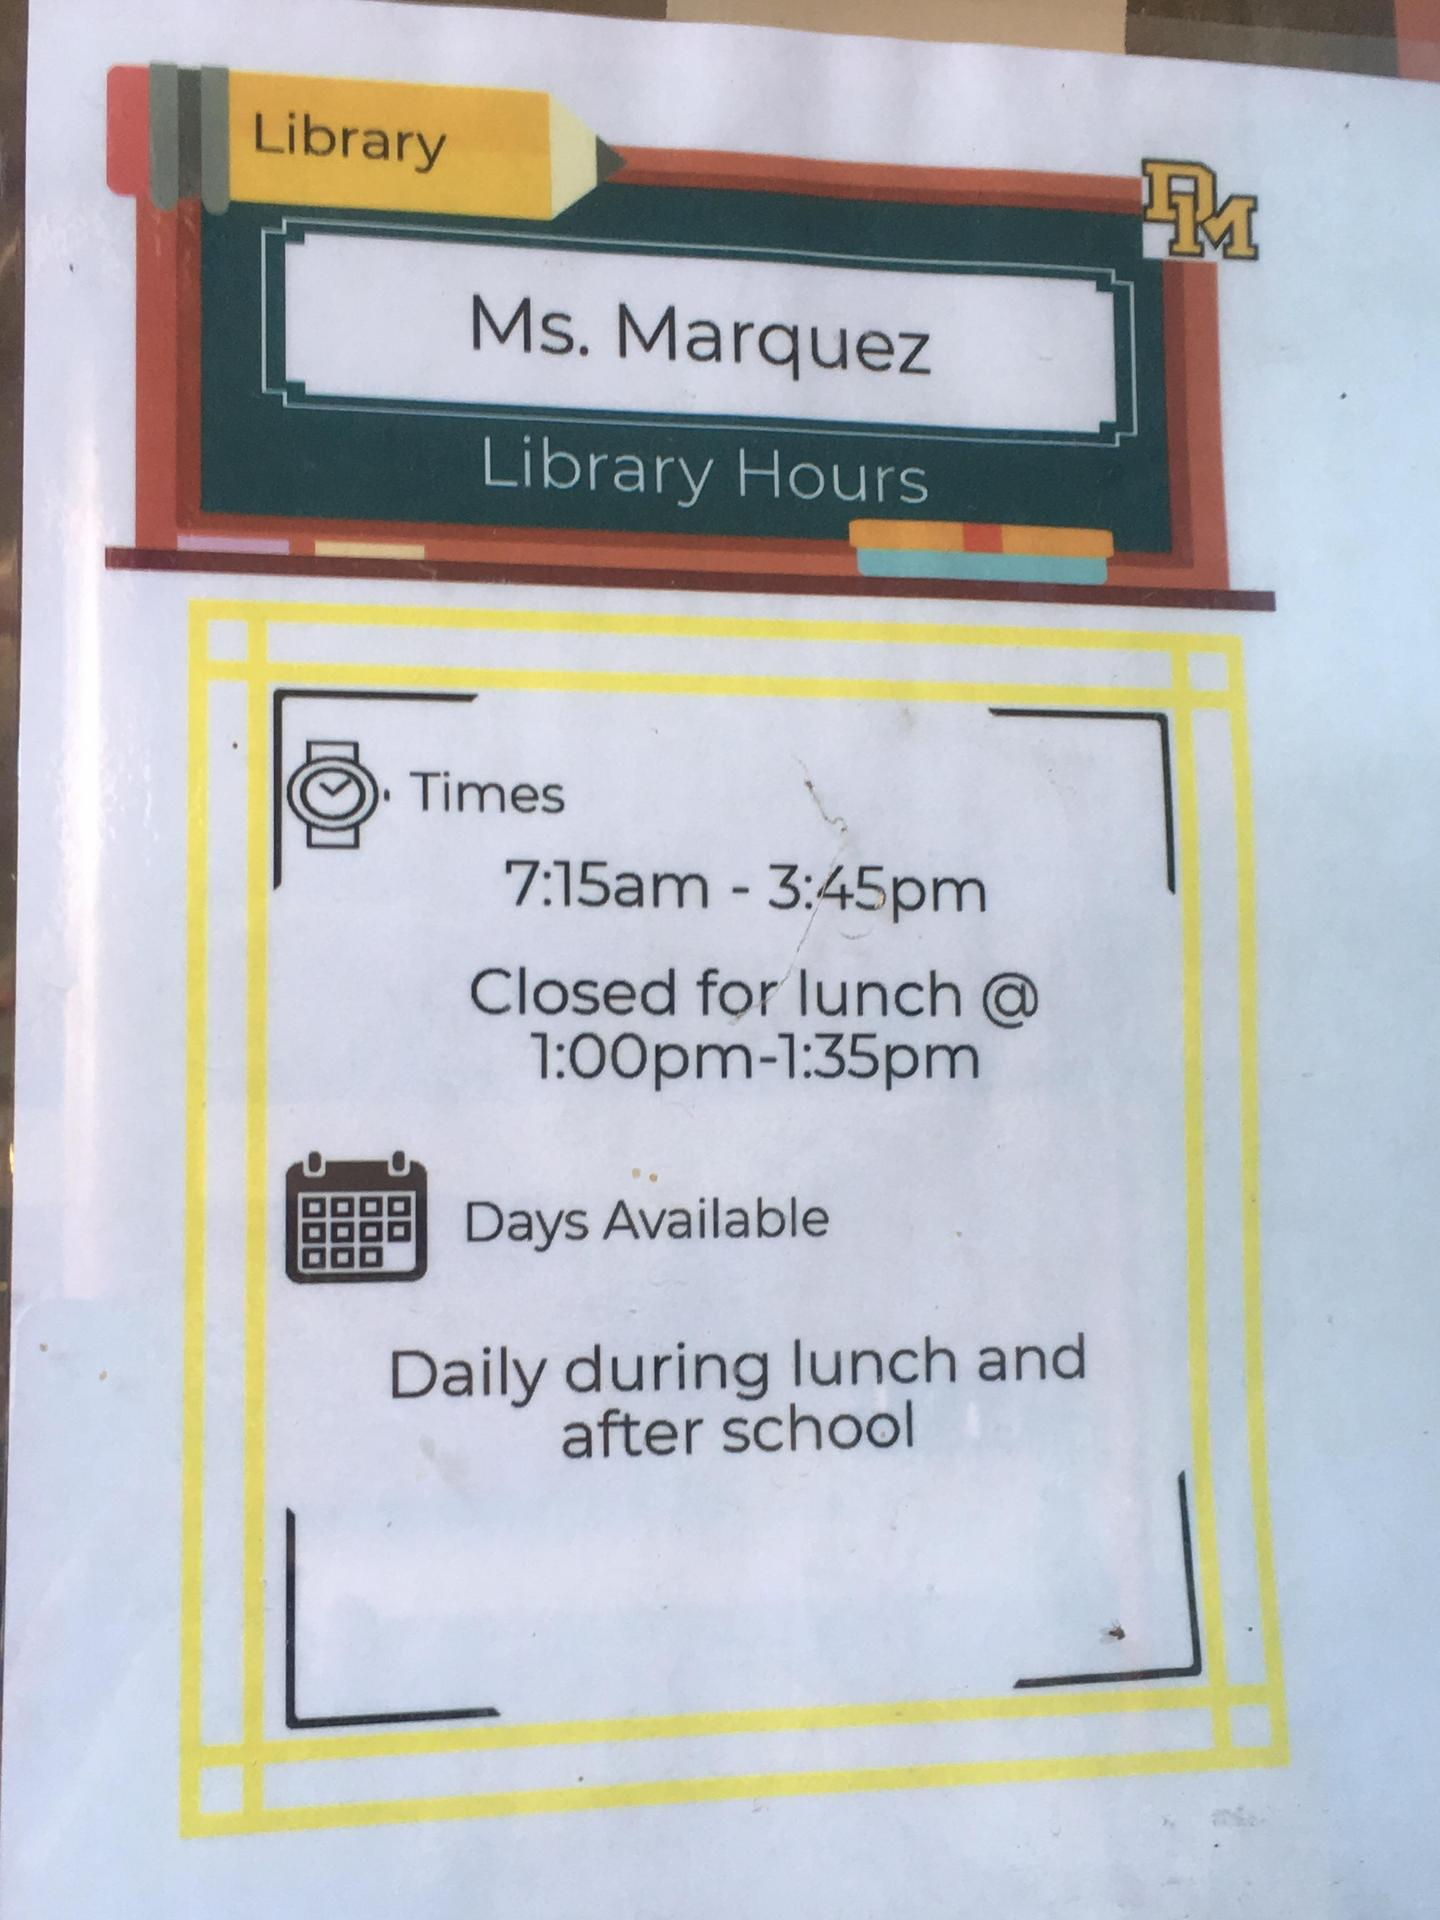 Image of Library Hours of Operation